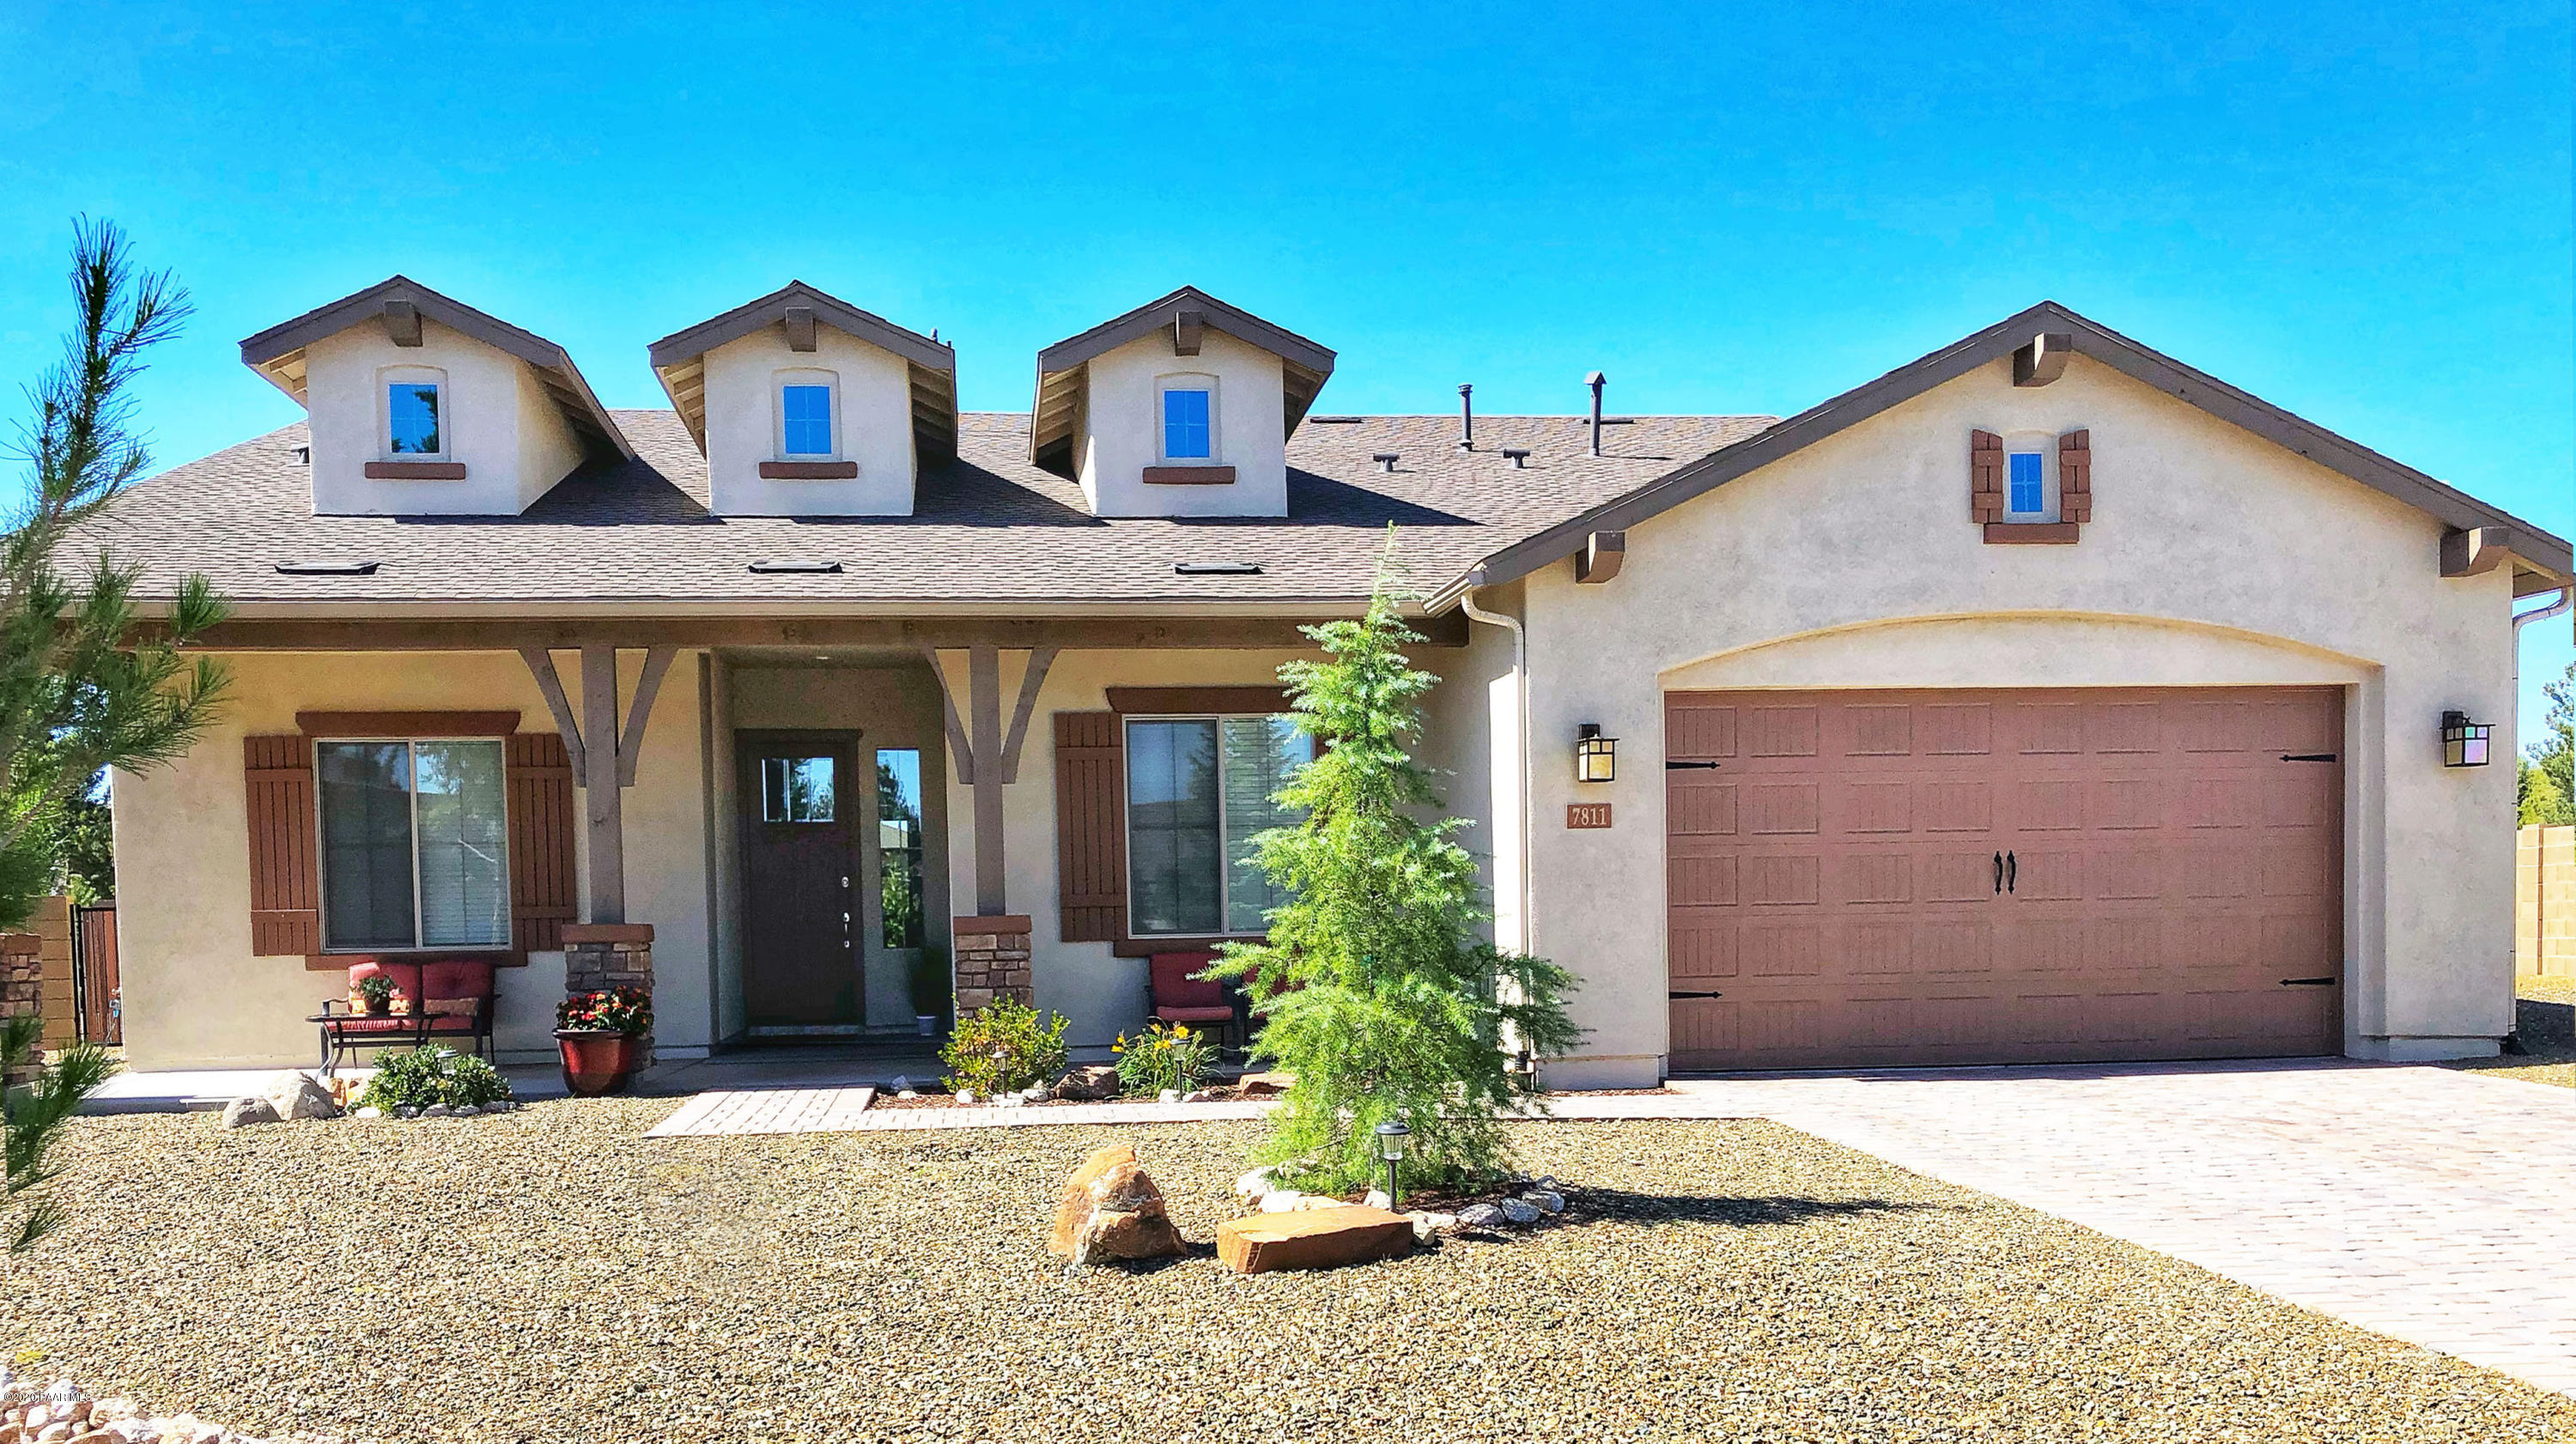 Photo of 7811 Ramblin Ranch, Prescott Valley, AZ 86315